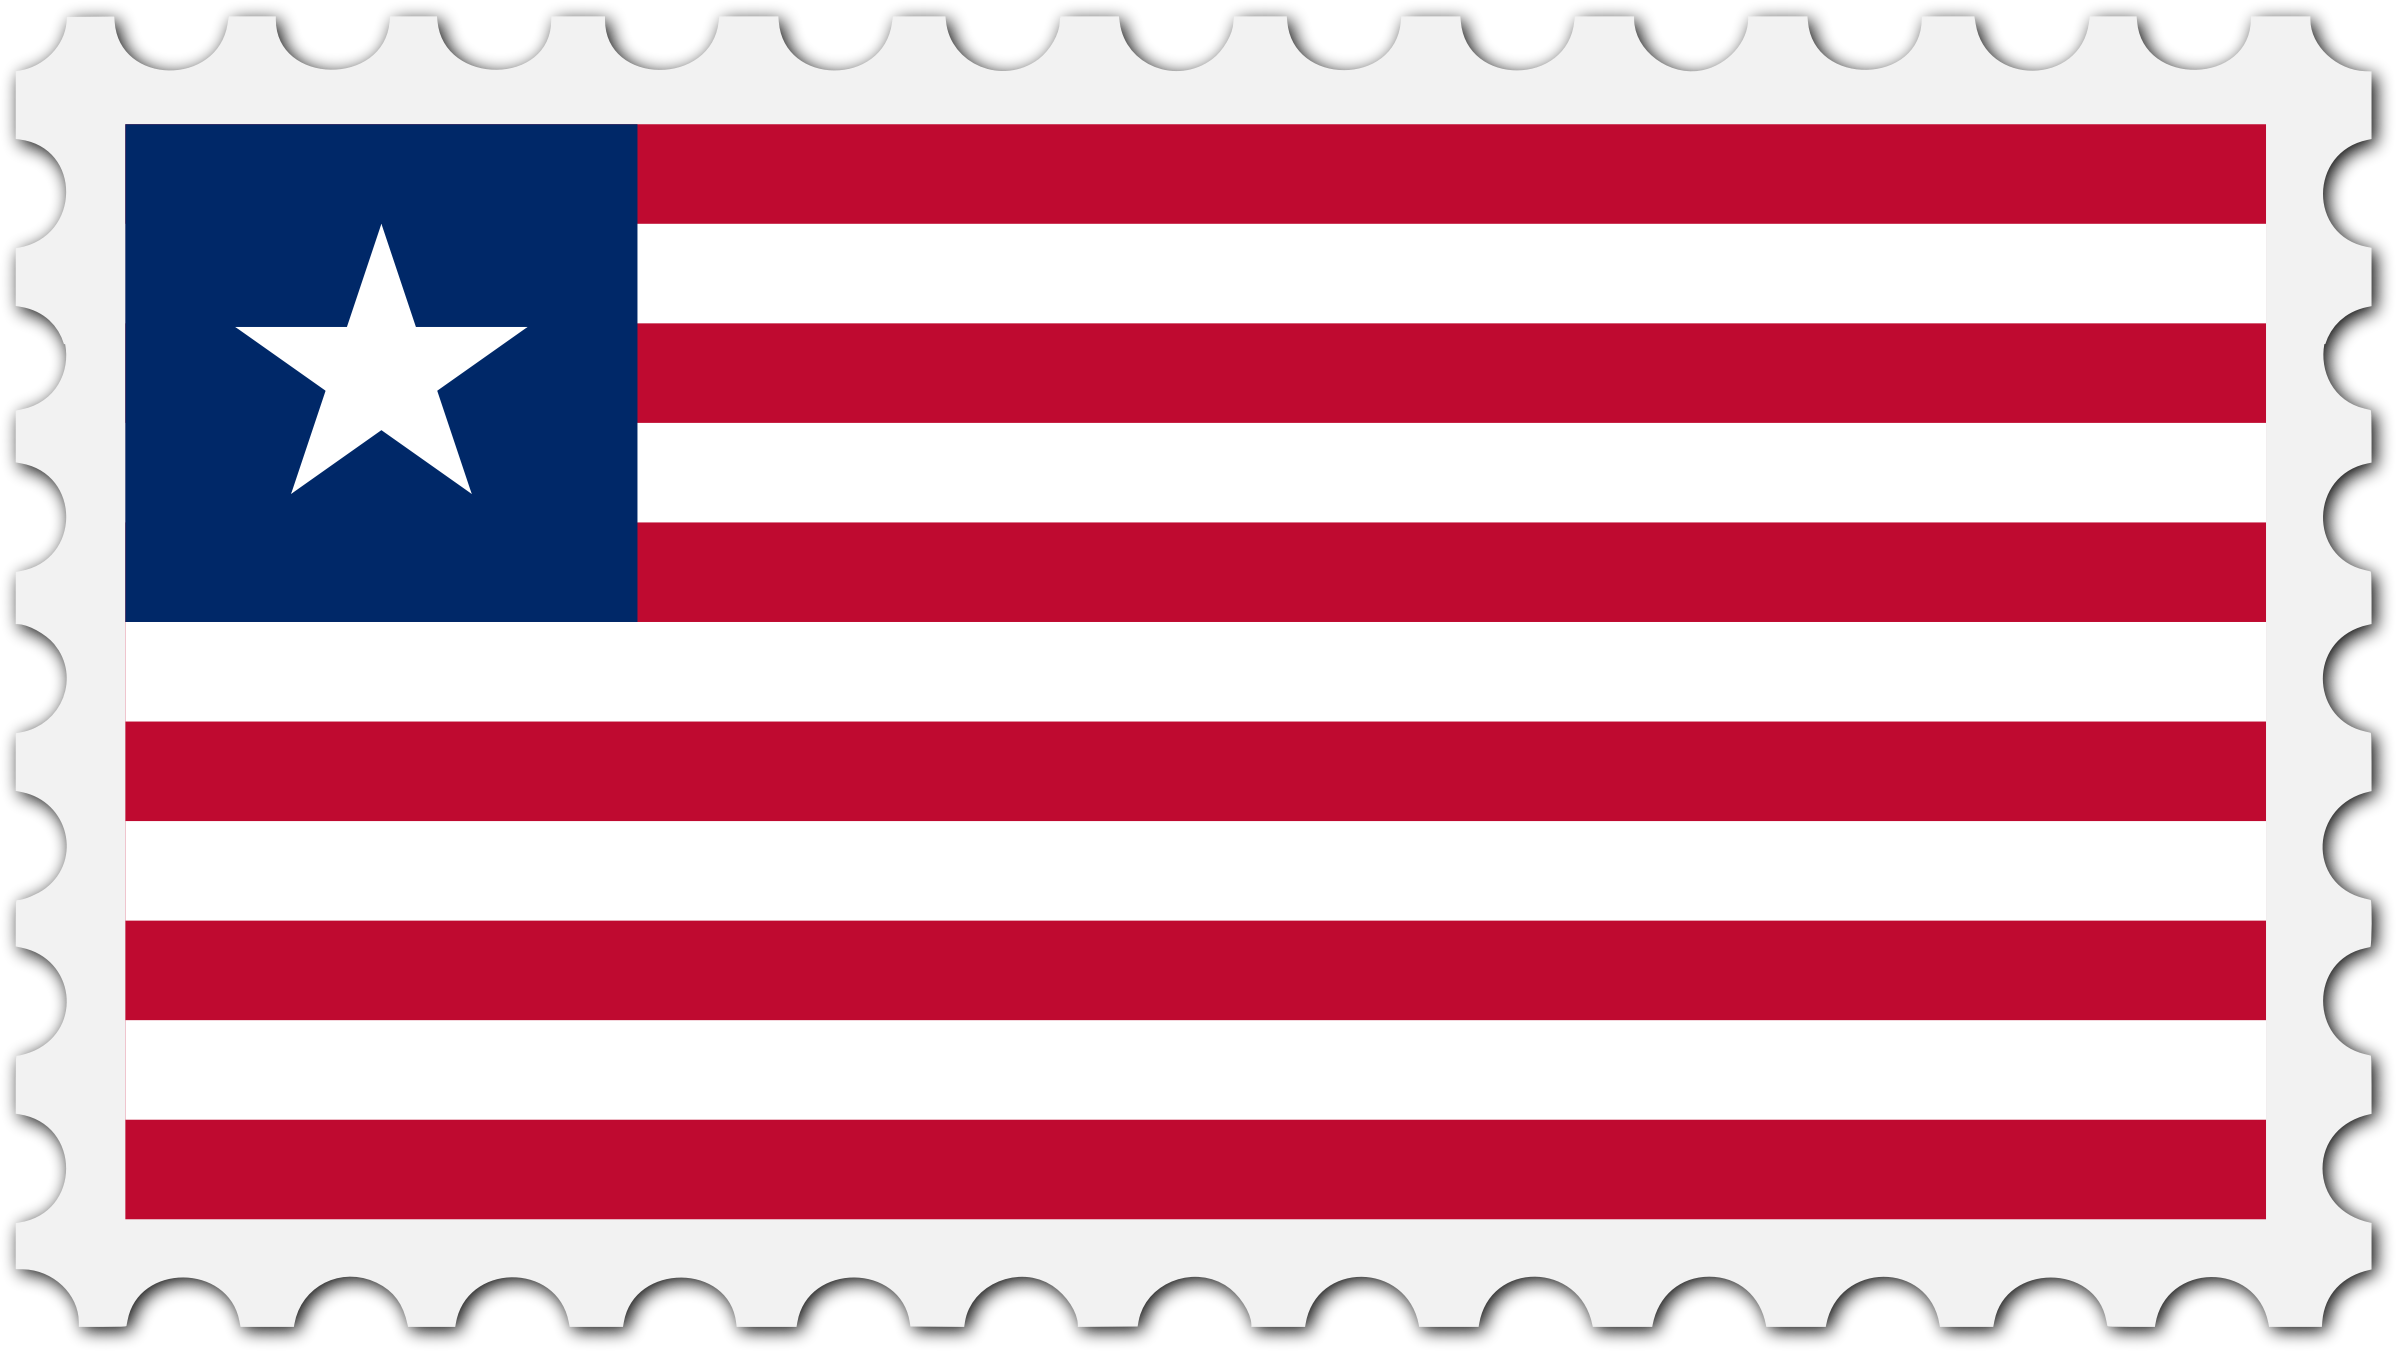 Liberia flag stamp by Firkin